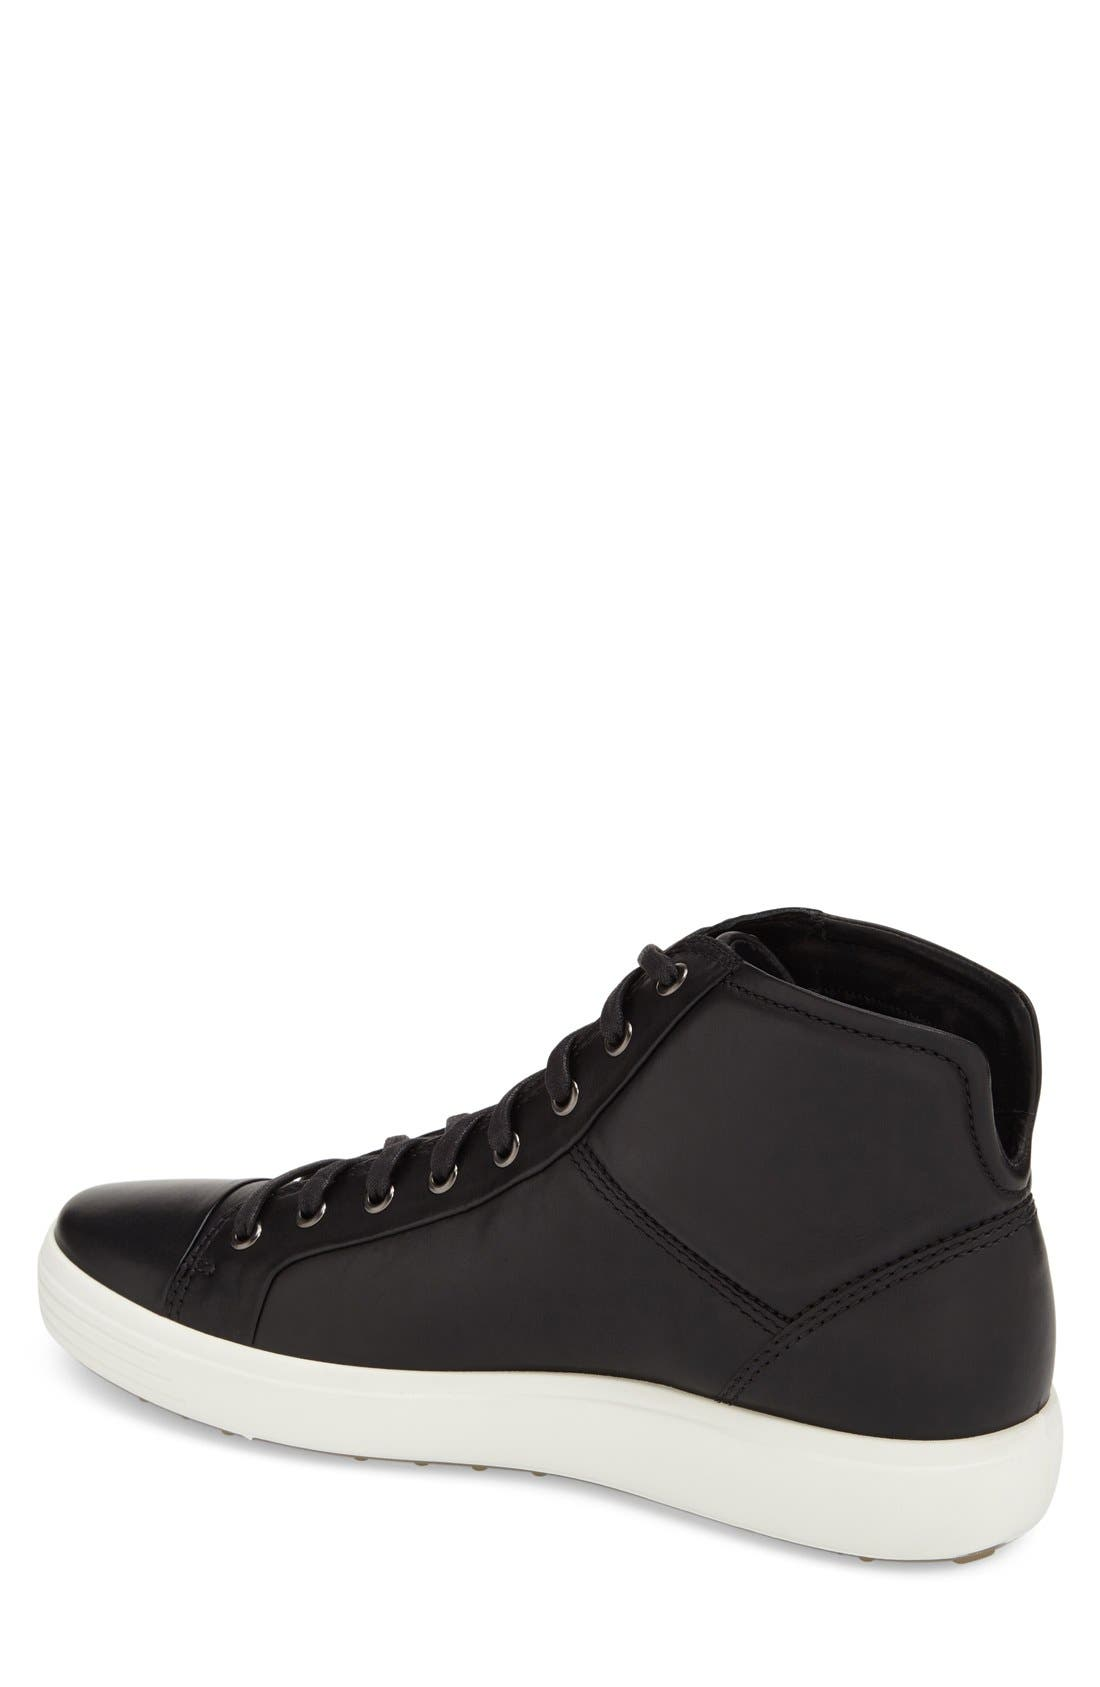 'Soft 7' High Top Sneaker,                             Alternate thumbnail 3, color,                             BLACK LEATHER